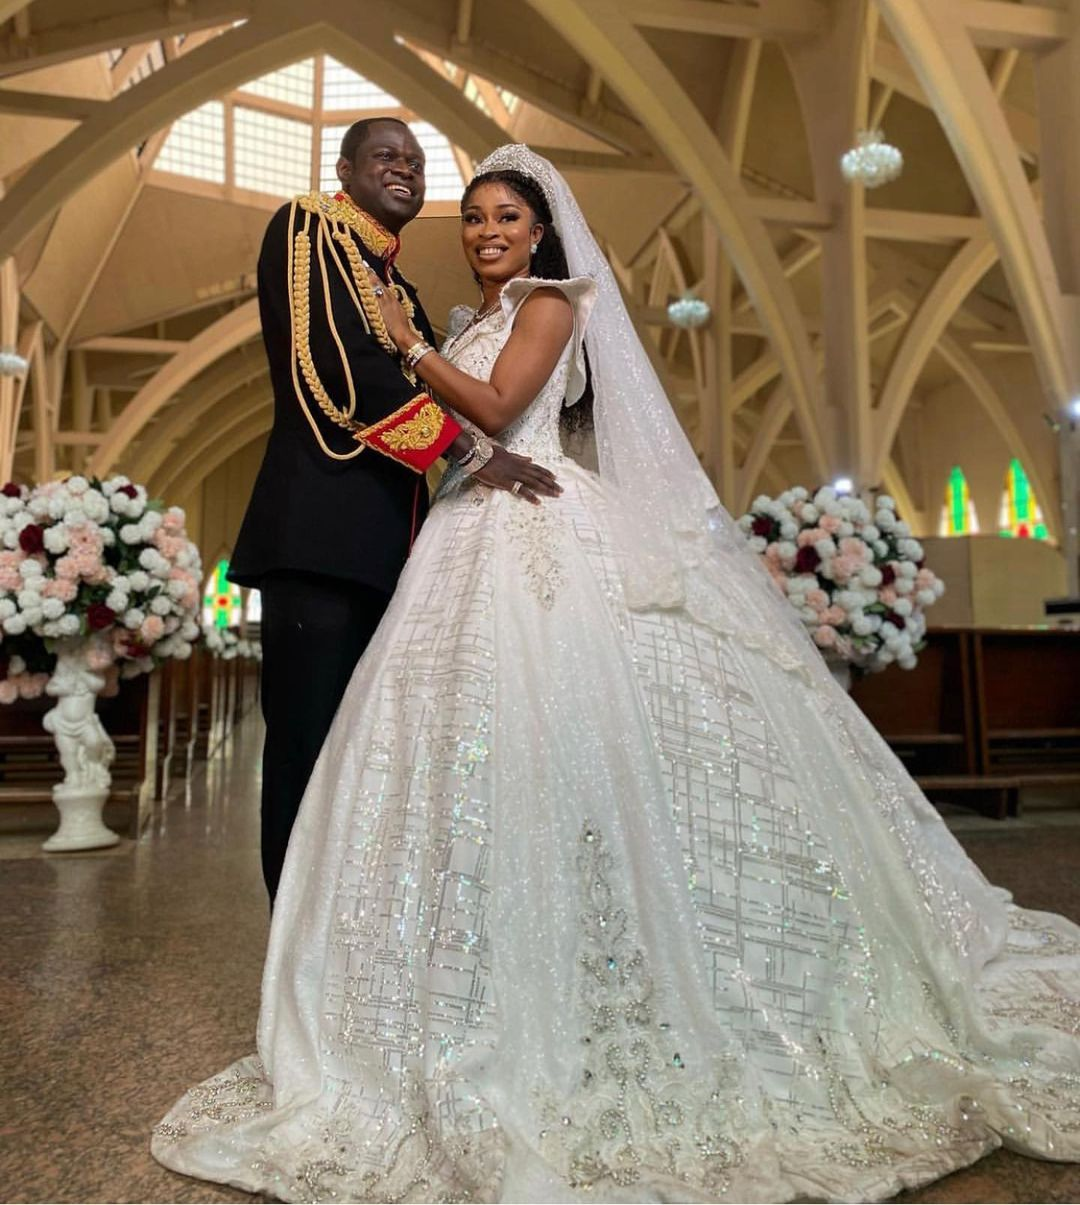 Malivelihood wedding photos